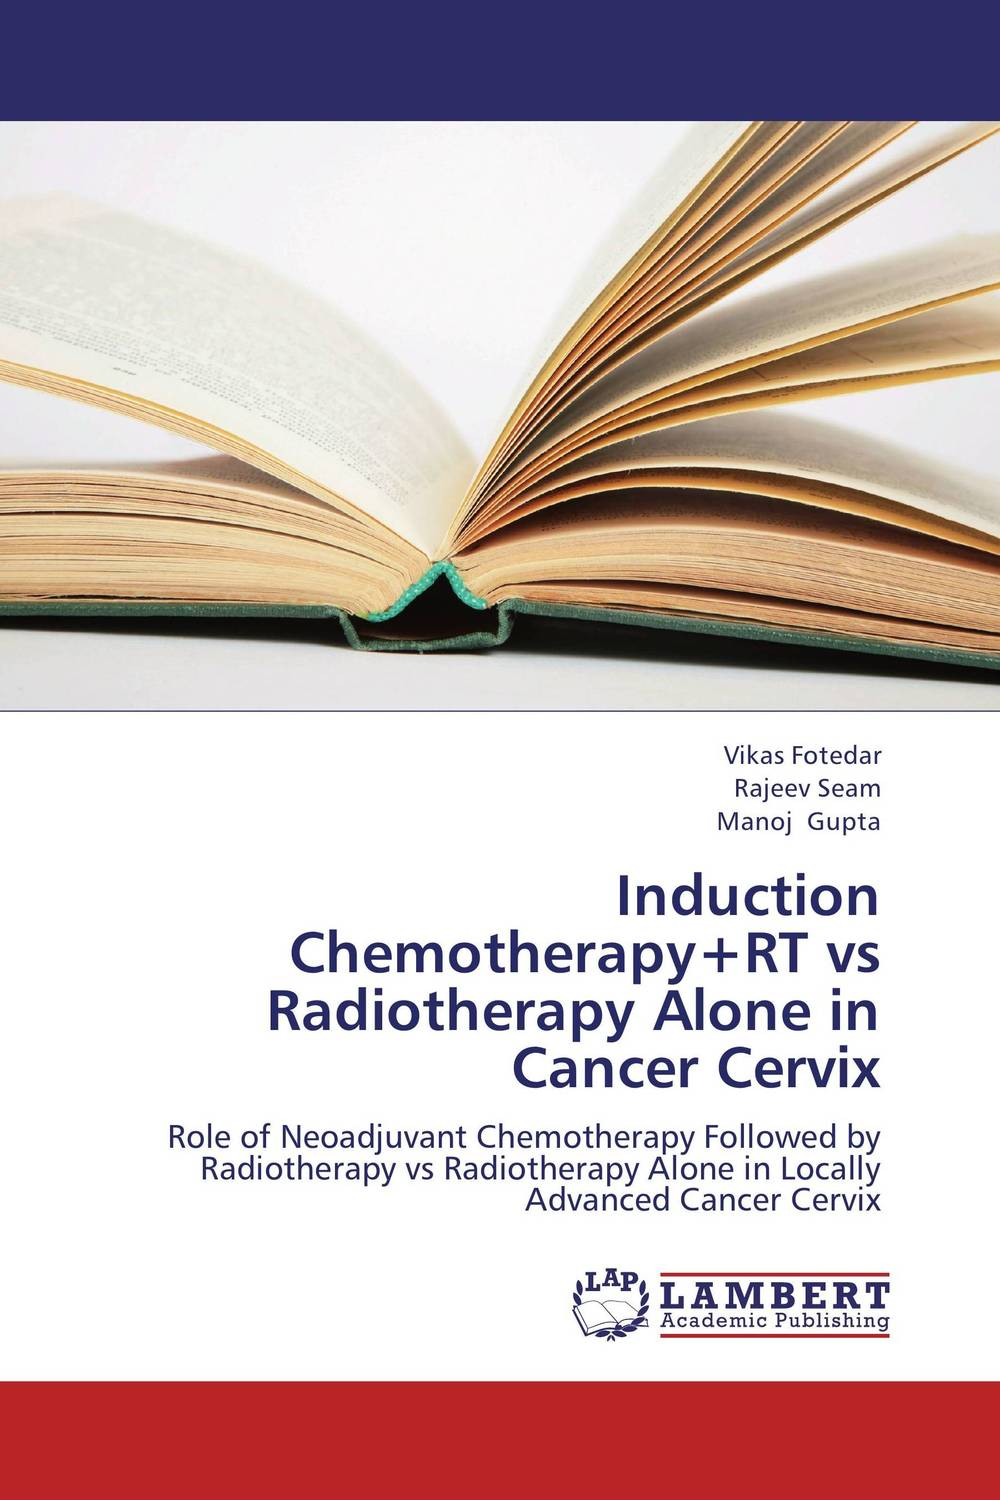 Induction Chemotherapy+RT vs Radiotherapy Alone in Cancer Cervix pain management among colorectal cancer patient on chemotherapy